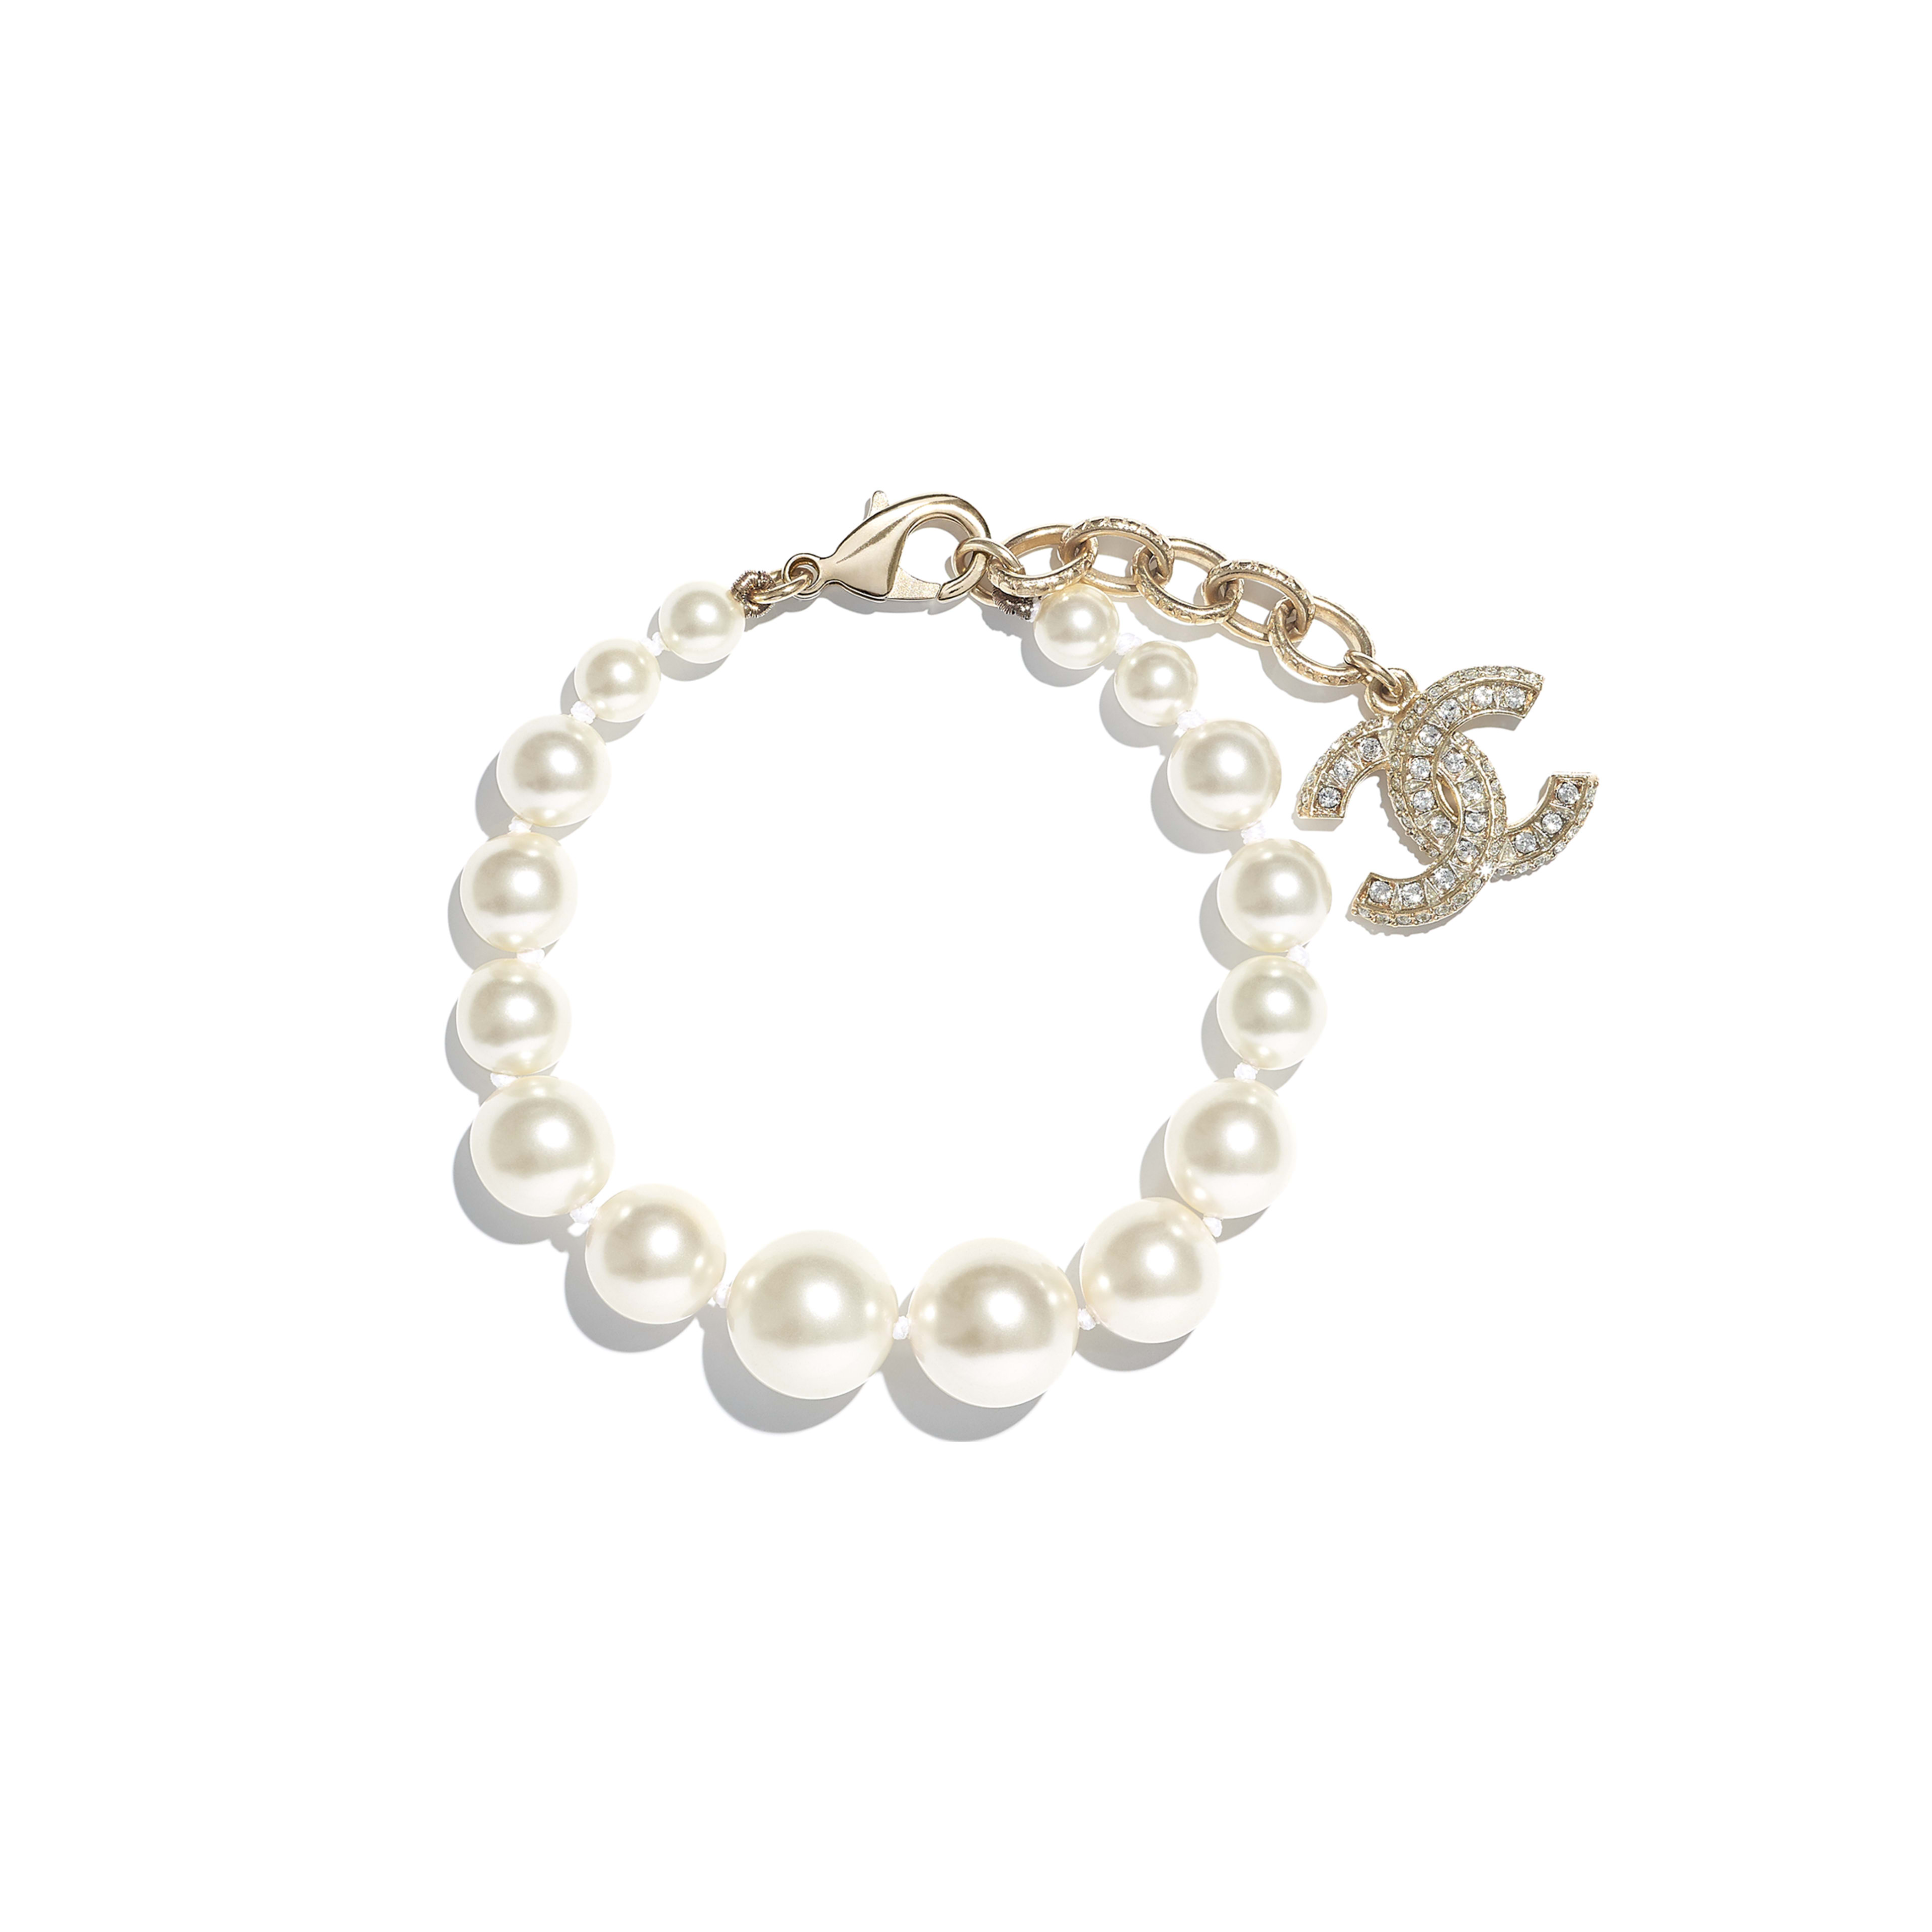 Bracelet - Gold, Pearly White & Crystal - Metal, Glass Pearls, Resin & Strass - Default view - see full sized version